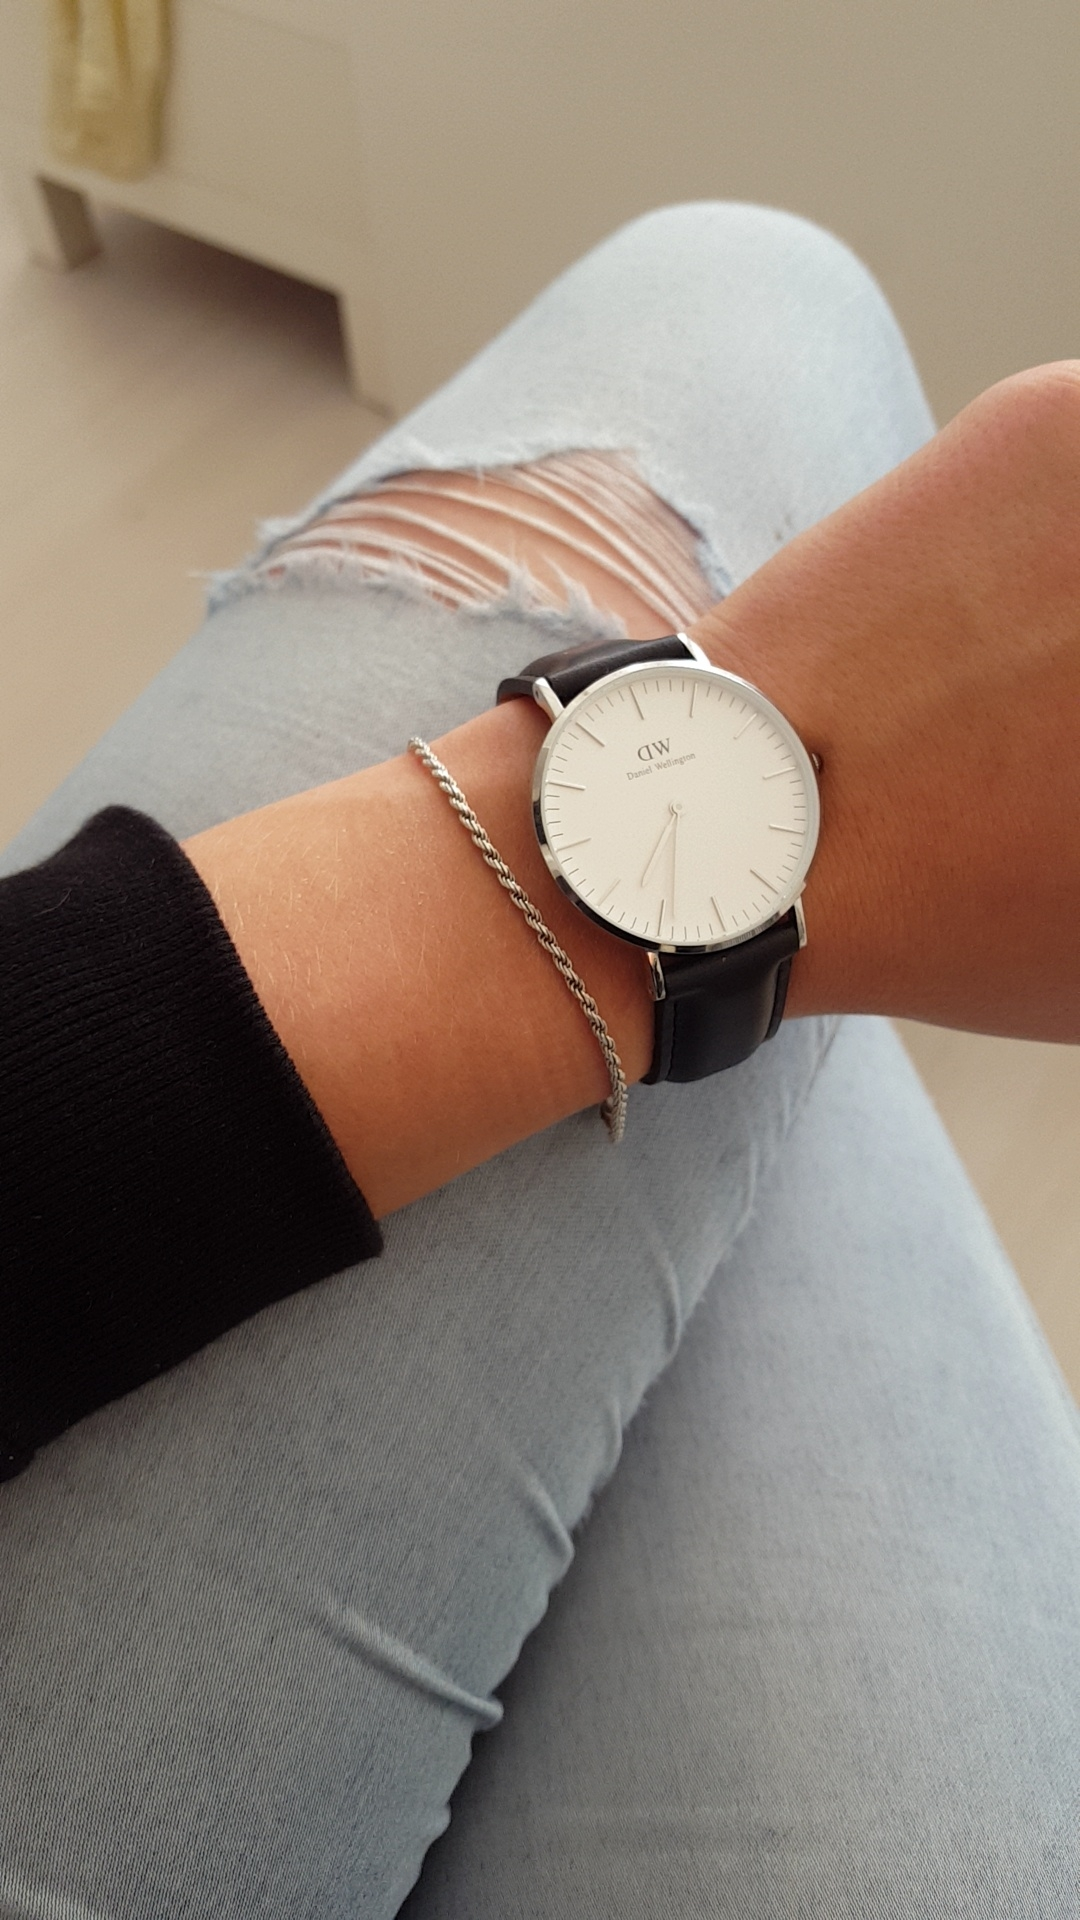 20fd2220c158 ... when I got back from travelling and I honestly couldn t be happier.  Great quality and a beautiful design. I d definately recommand this watch  to others